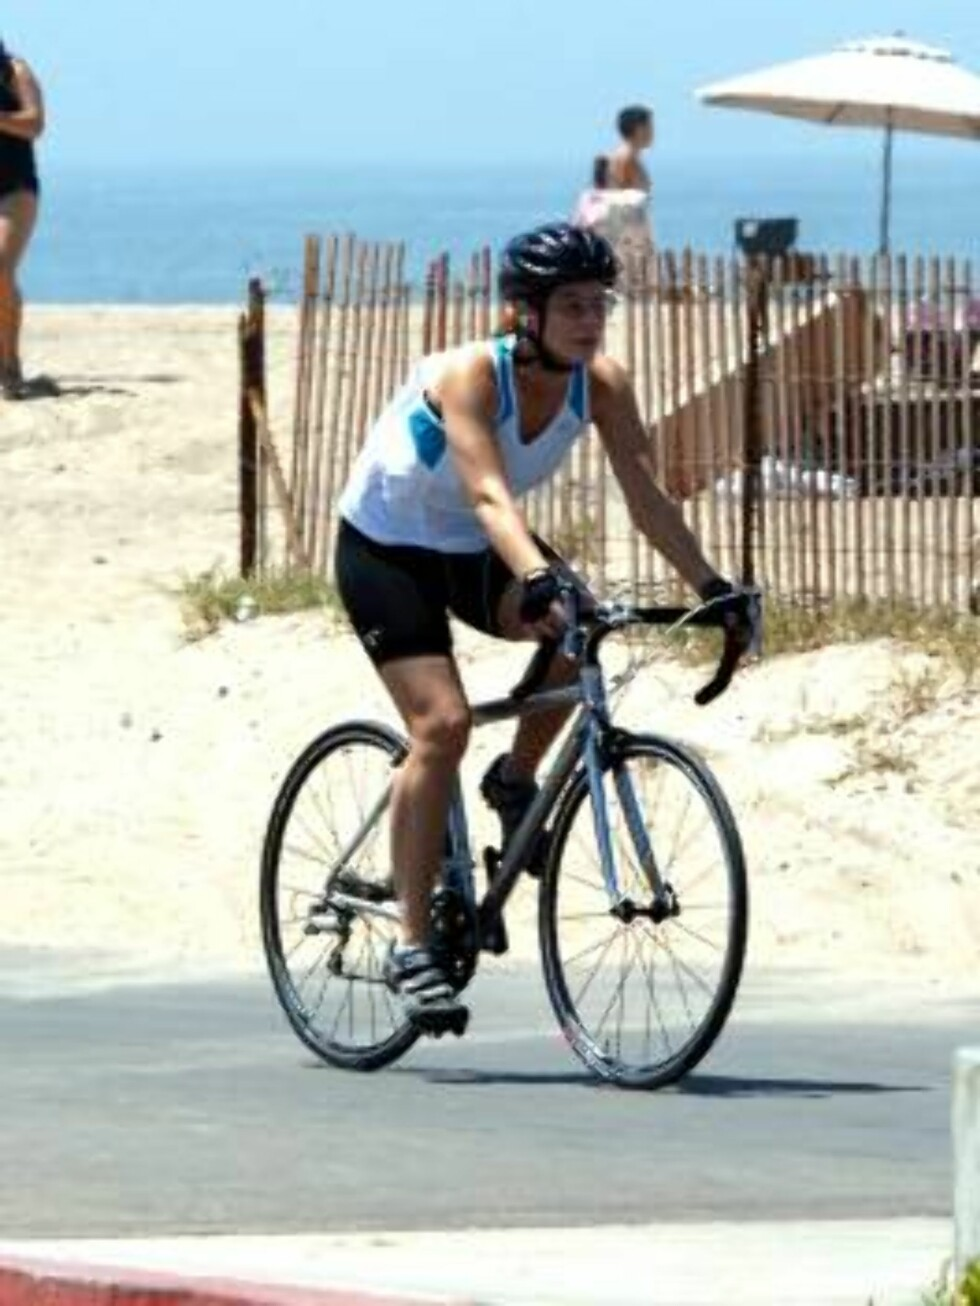 Sandra Bullock among rumors of pregnancy is riding her bike on the beach in Los Angeles. Sandra and Jesse James were spending a romantic week end at their beach house, enjoying an icecream and preparing a 4th of July party. July 2, 2006 X17agency EXCLUSIV Foto: All Over Press